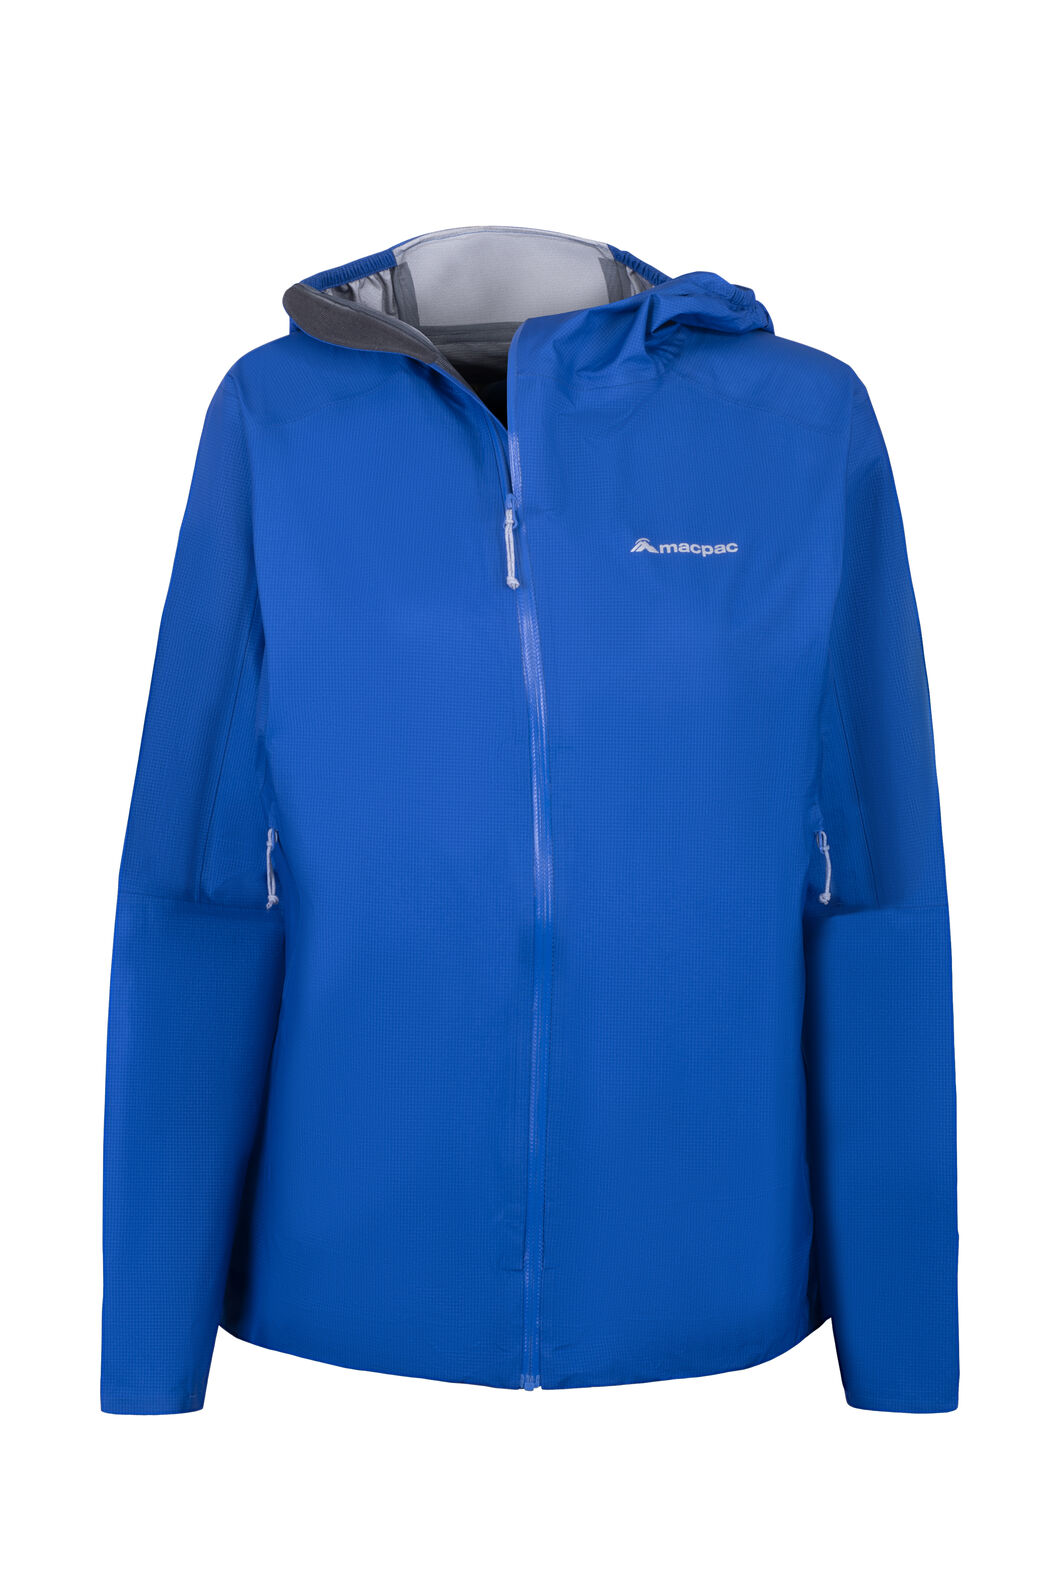 Macpac Nazomi Pertex® Rain Jacket — Women's, Nautical Blue, hi-res